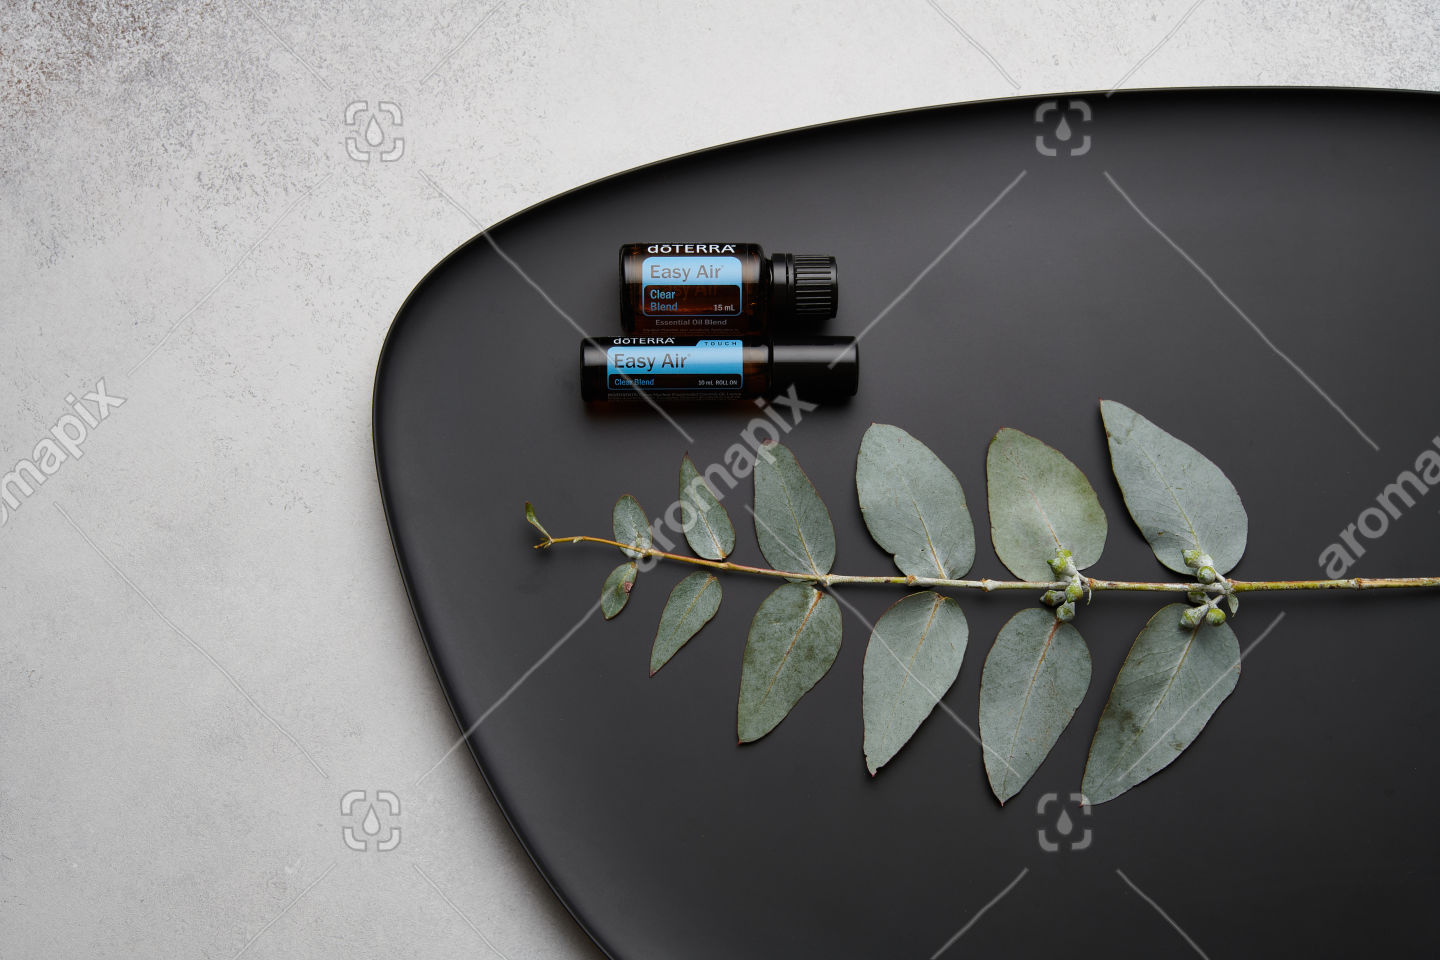 doTERRA Easy Air, Easy Air Touch and eucalyptus leaves on black plate